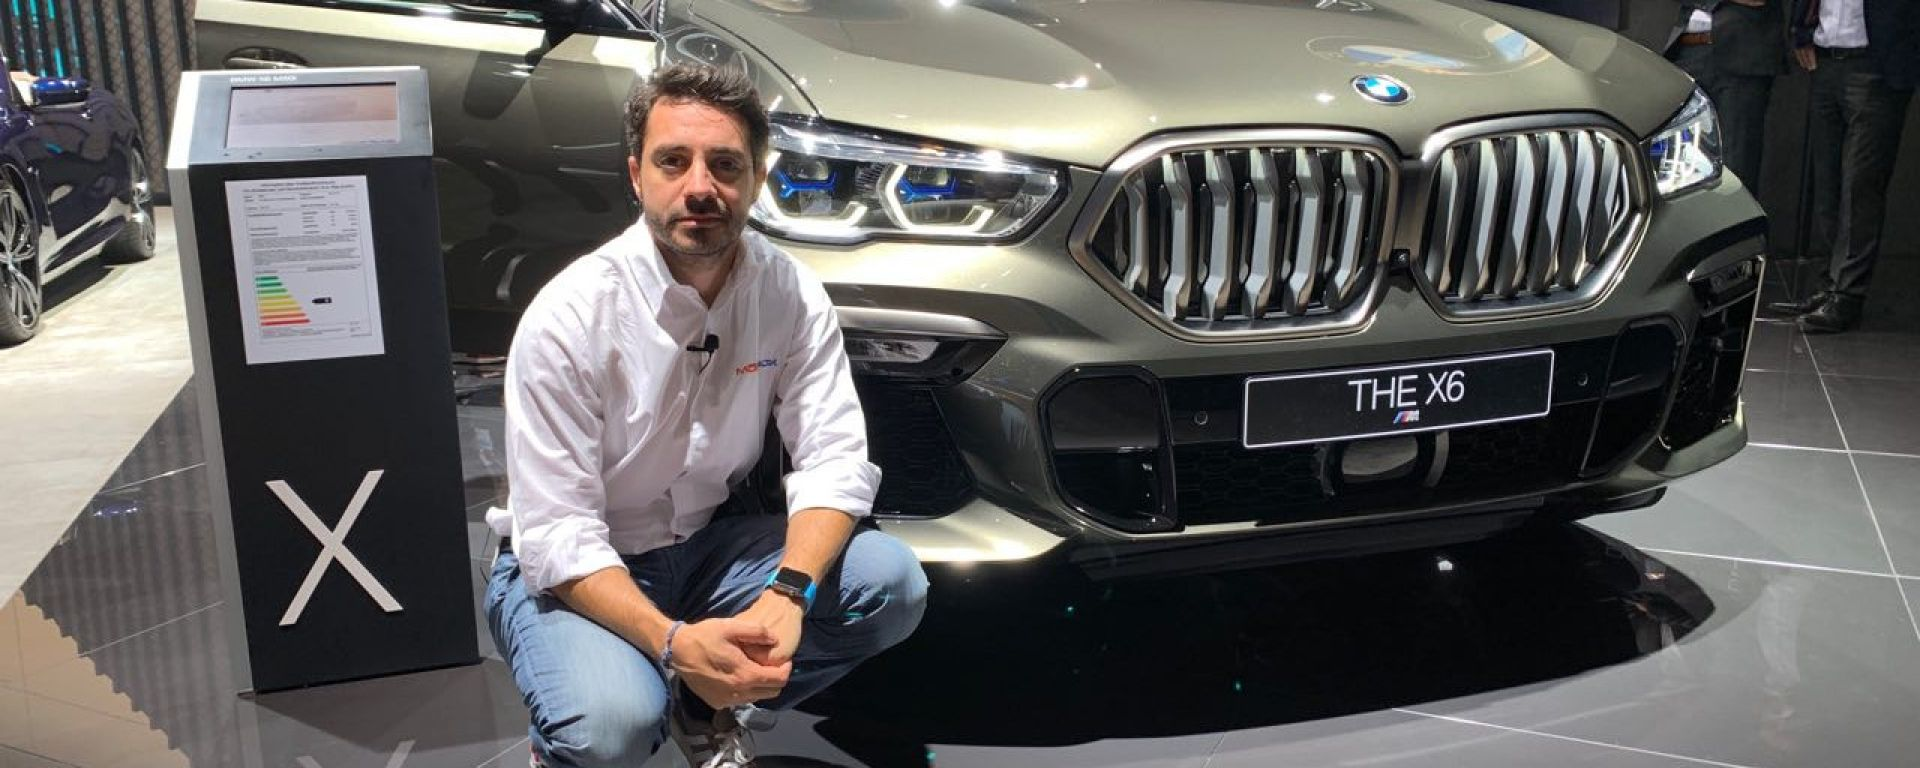 Nuova BMW X6, in video dal Salone di Francoforte 2019